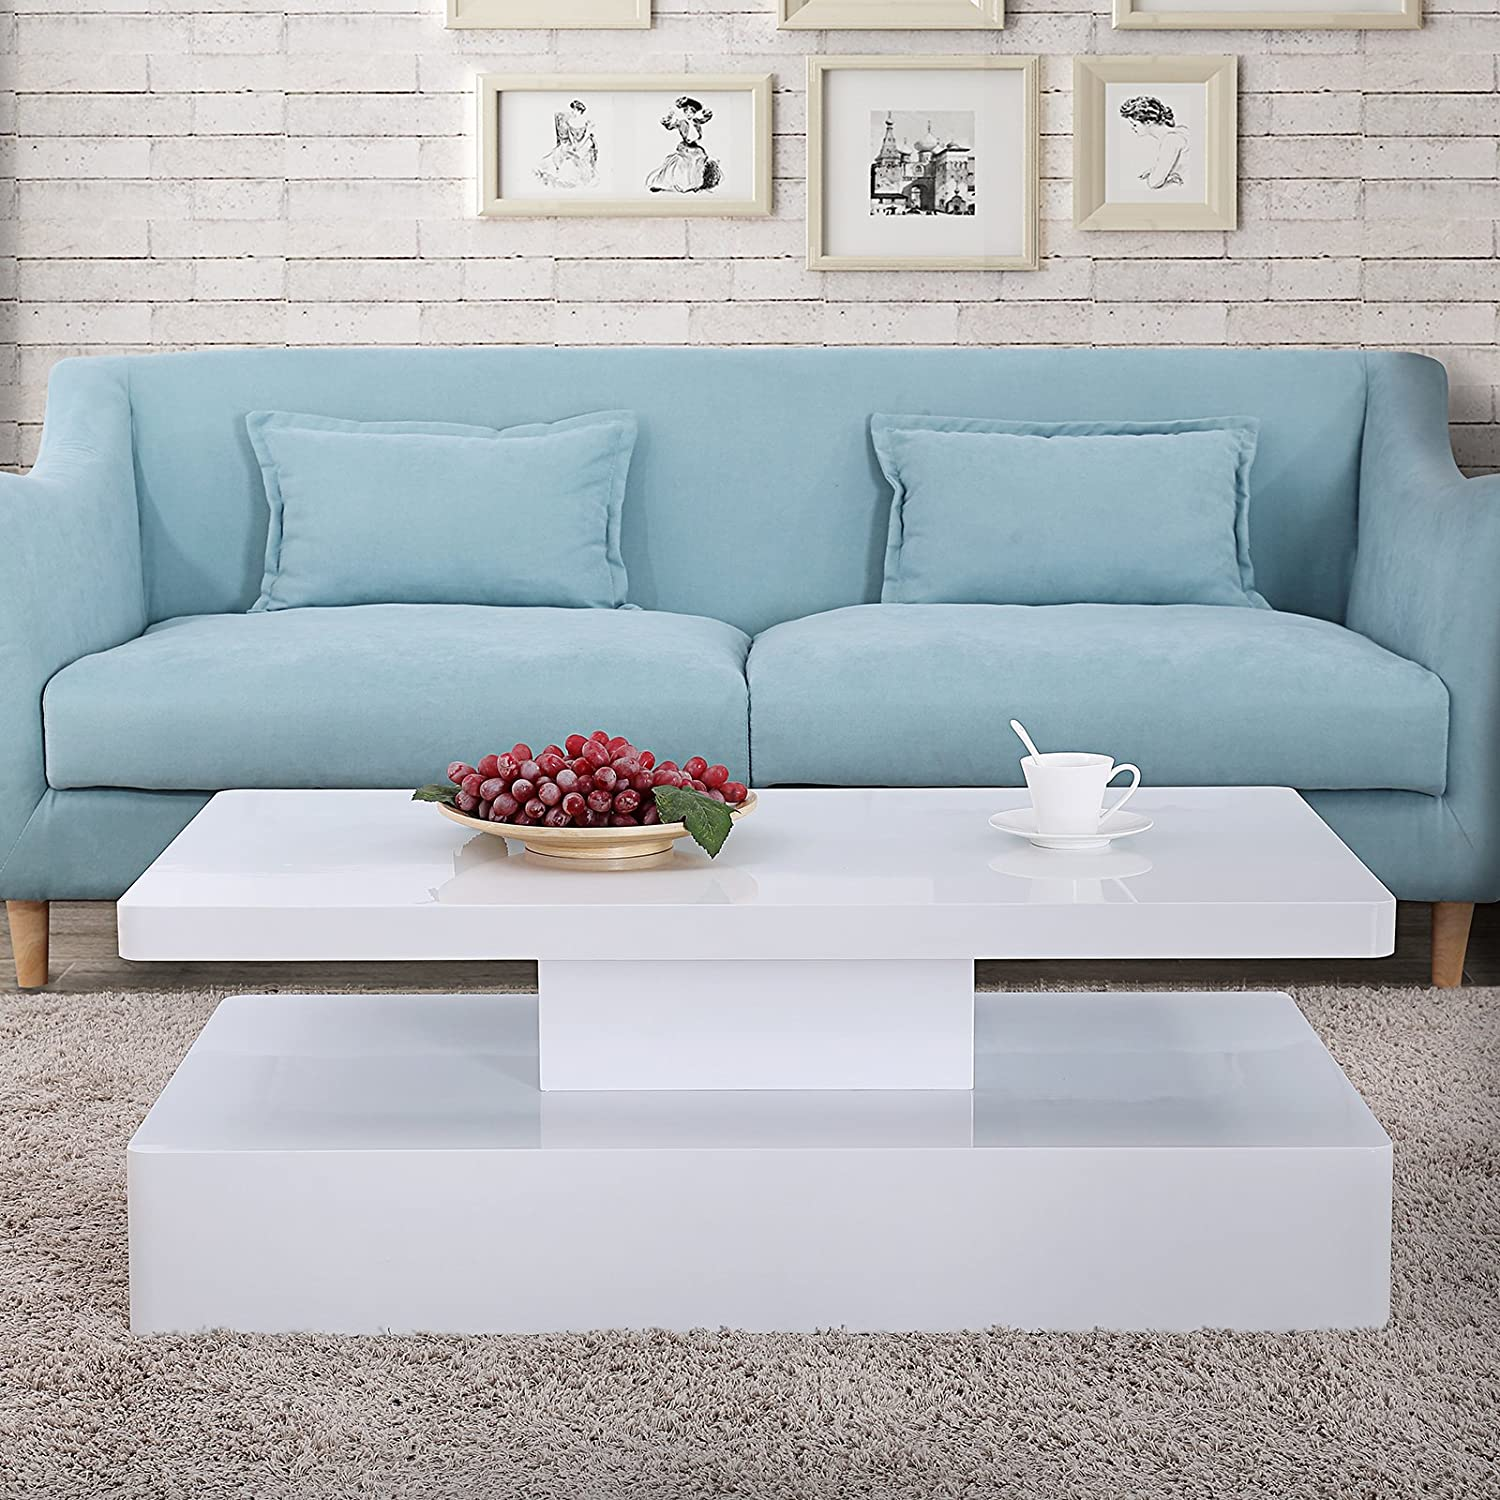 Mecor Modern Glossy White Coffee Table W/LED Lighting, Contemporary  Rectangle Design Living Room Furniture, 2 Tiers